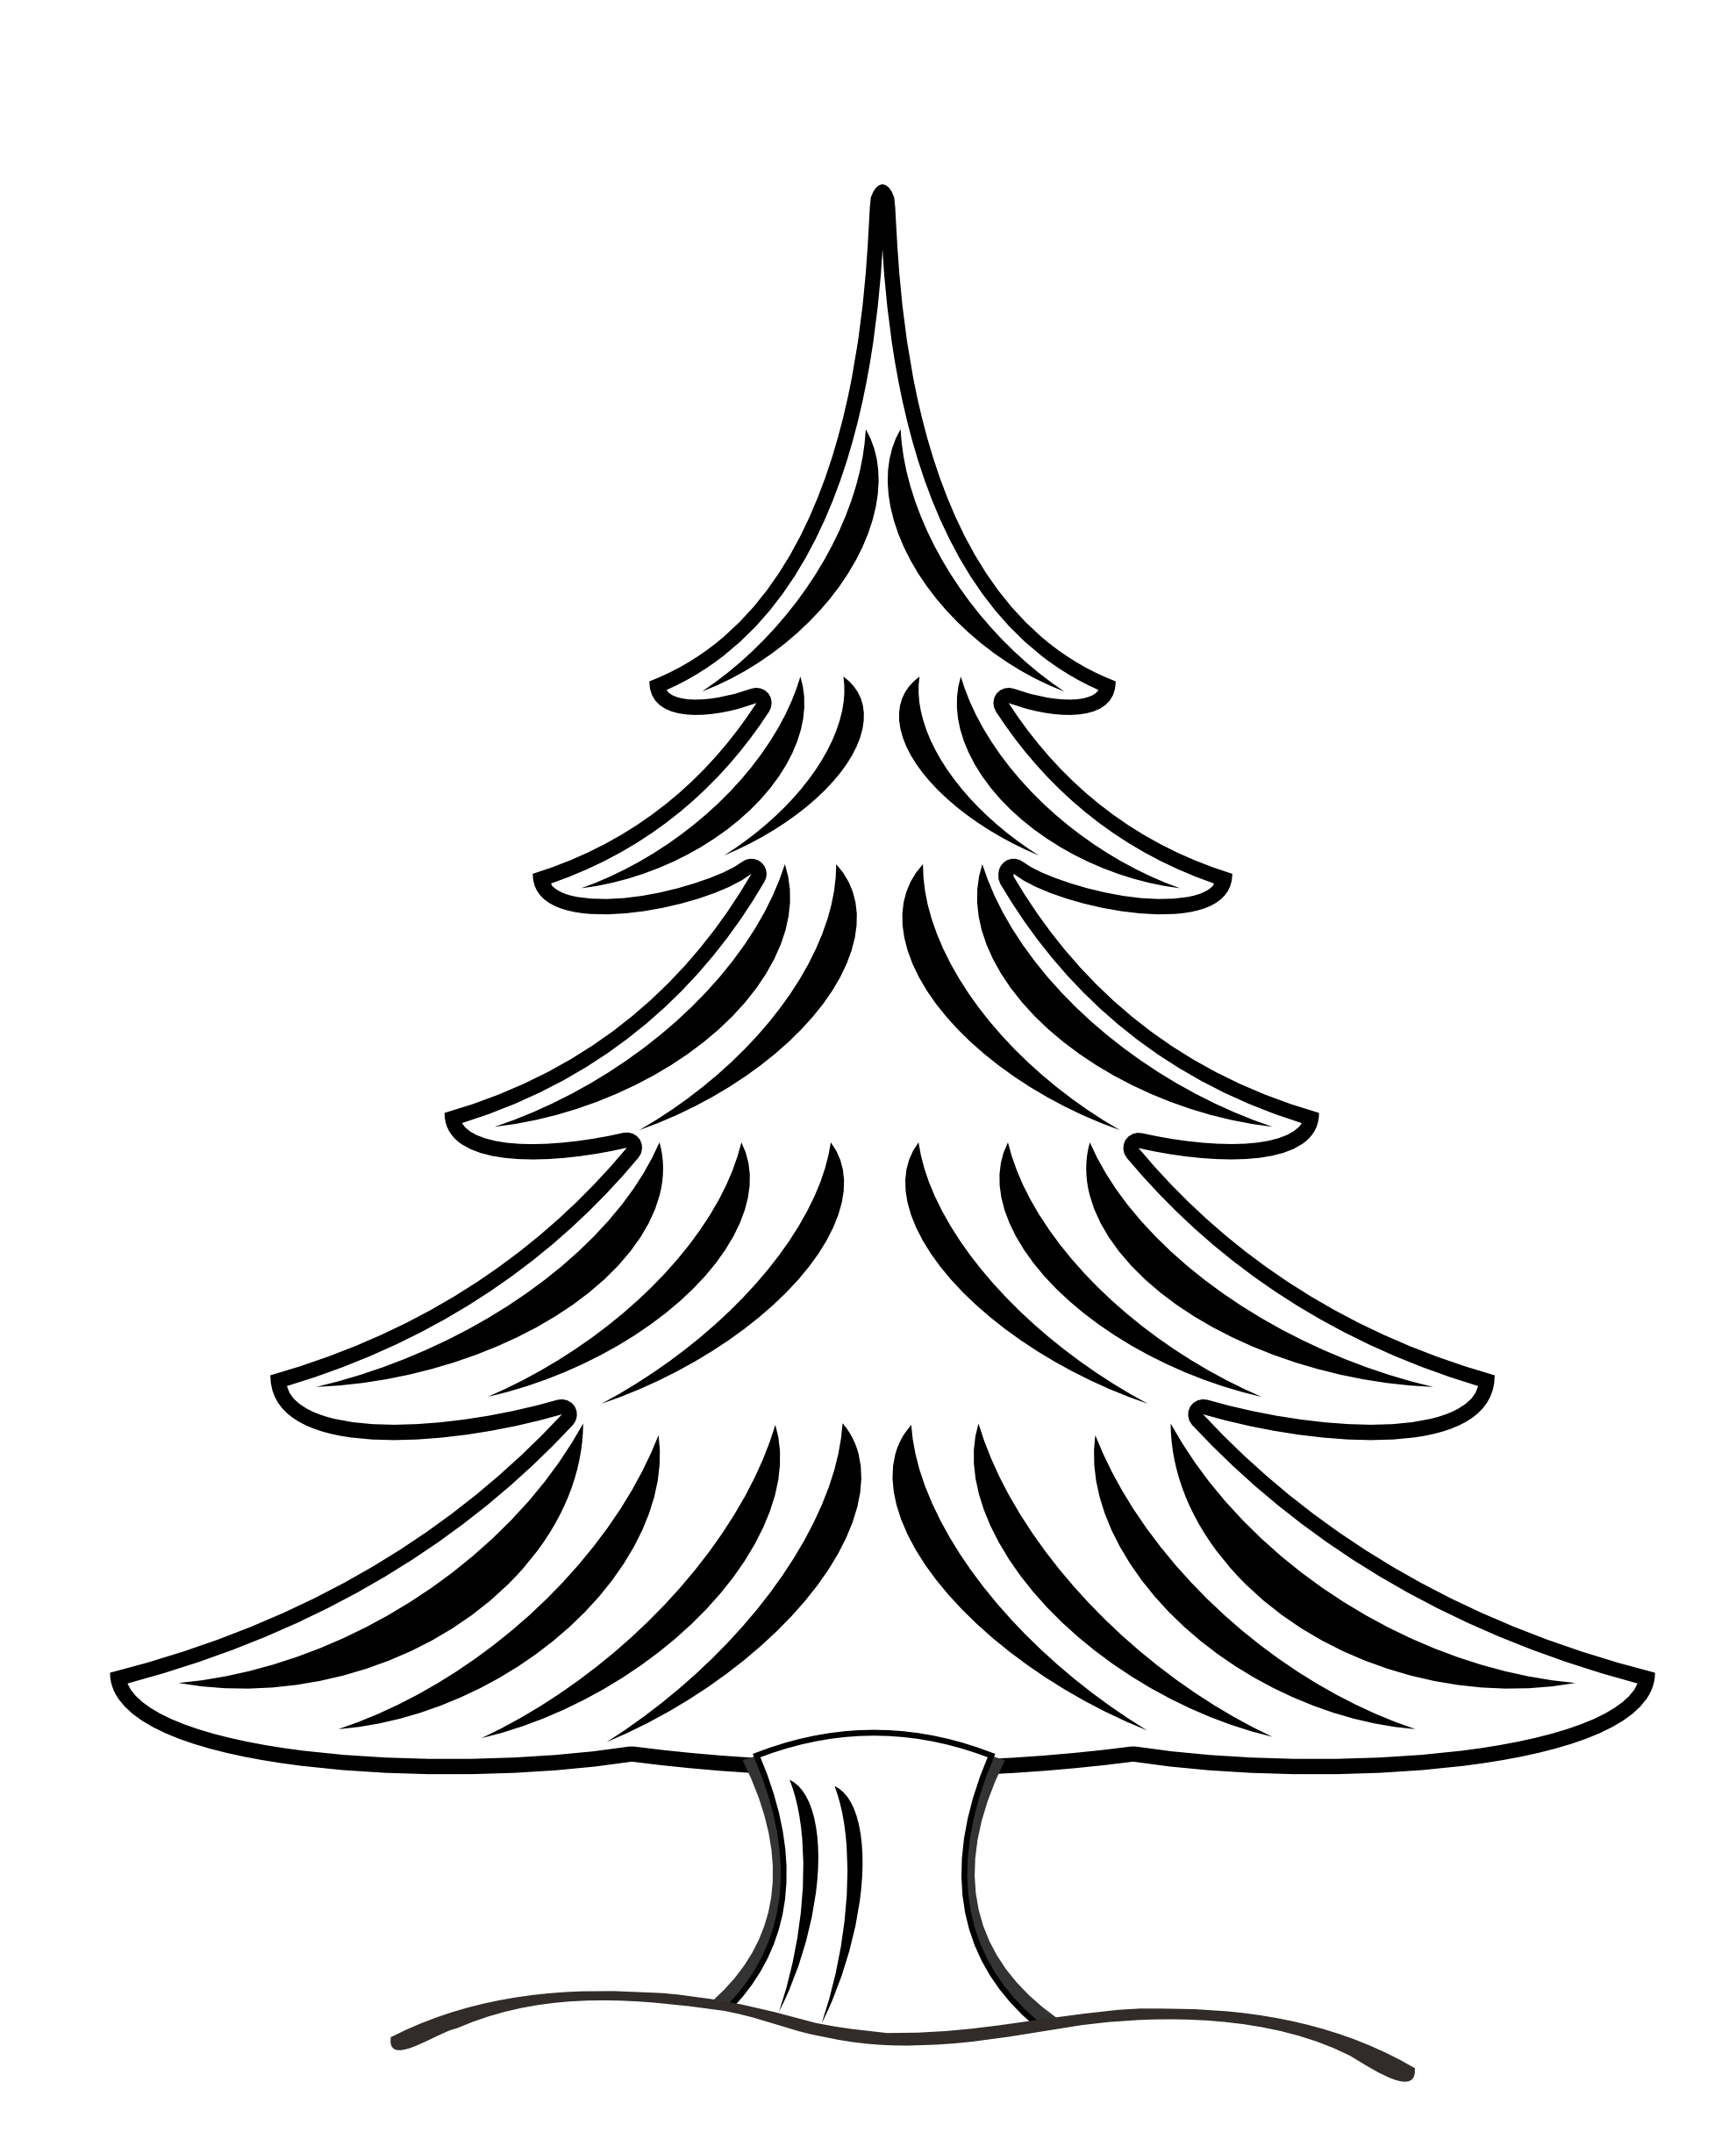 Pine drawing stick. Tree clipart at getdrawings